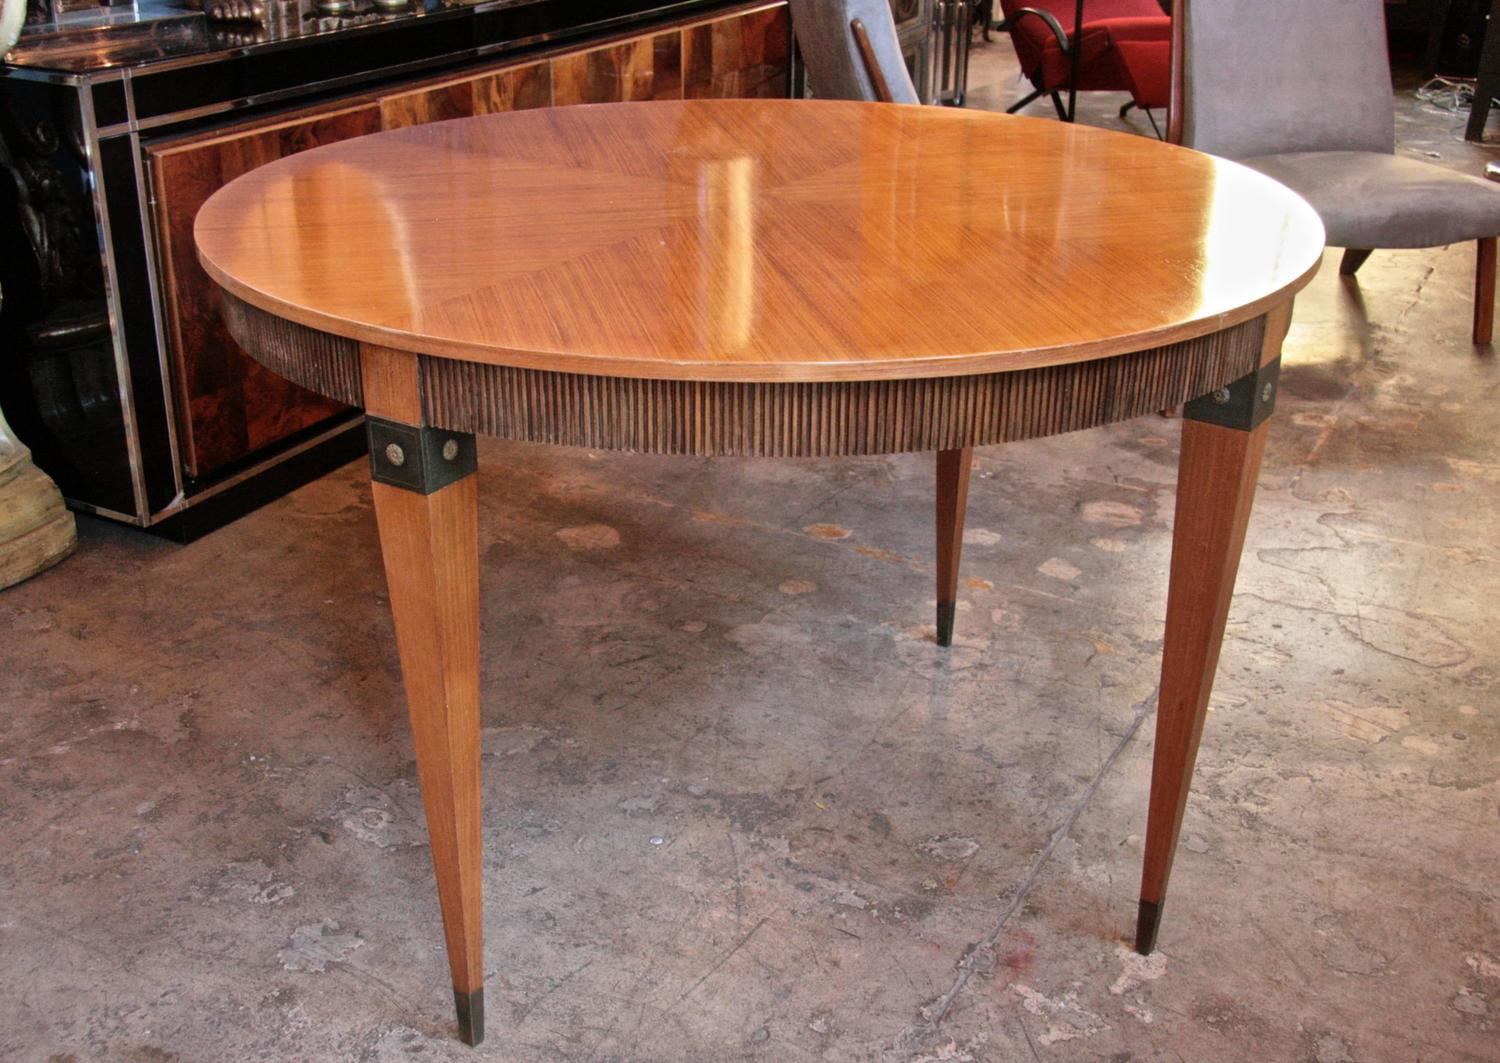 Italian Round Dining Table In Walnut With Bronze Inserts